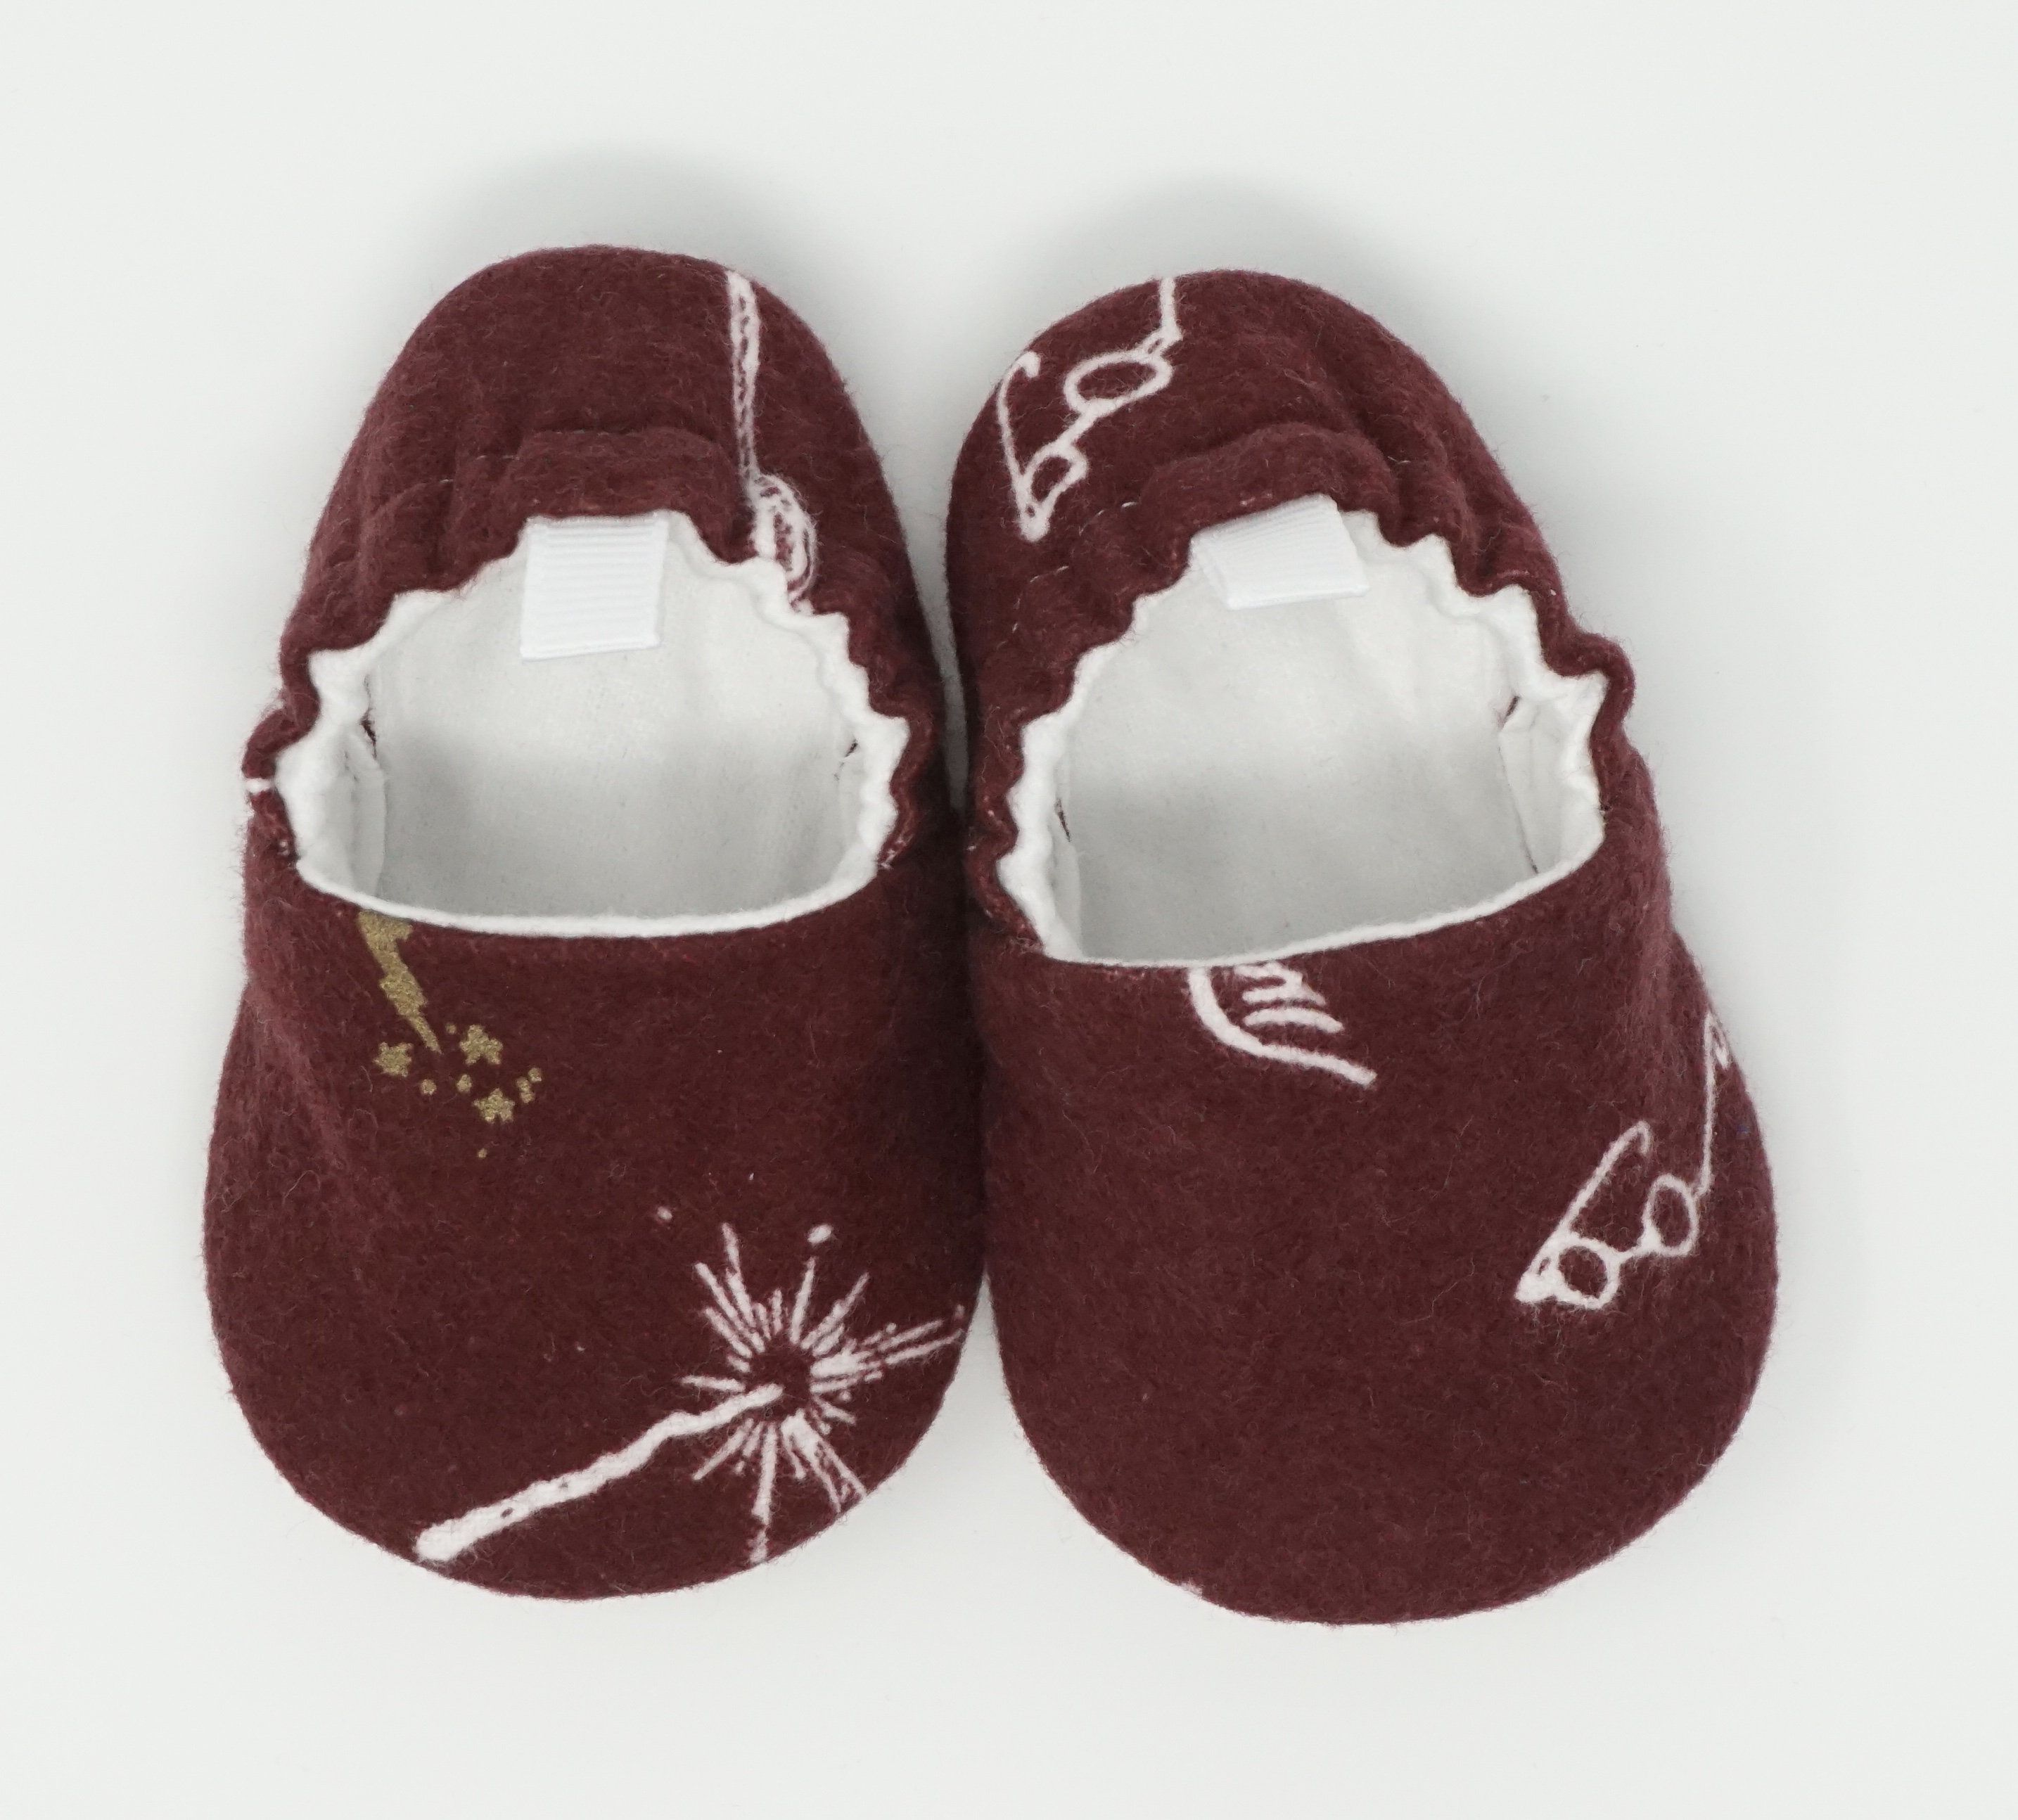 857f248bd Harry Potter Baby Shoes, Potter Baby Booties, Soft Sole Baby Shoes, Baby  Shower Gift, Crib Shoes, Baby Gift, Baby Moccs, Baby Moccasins by ...